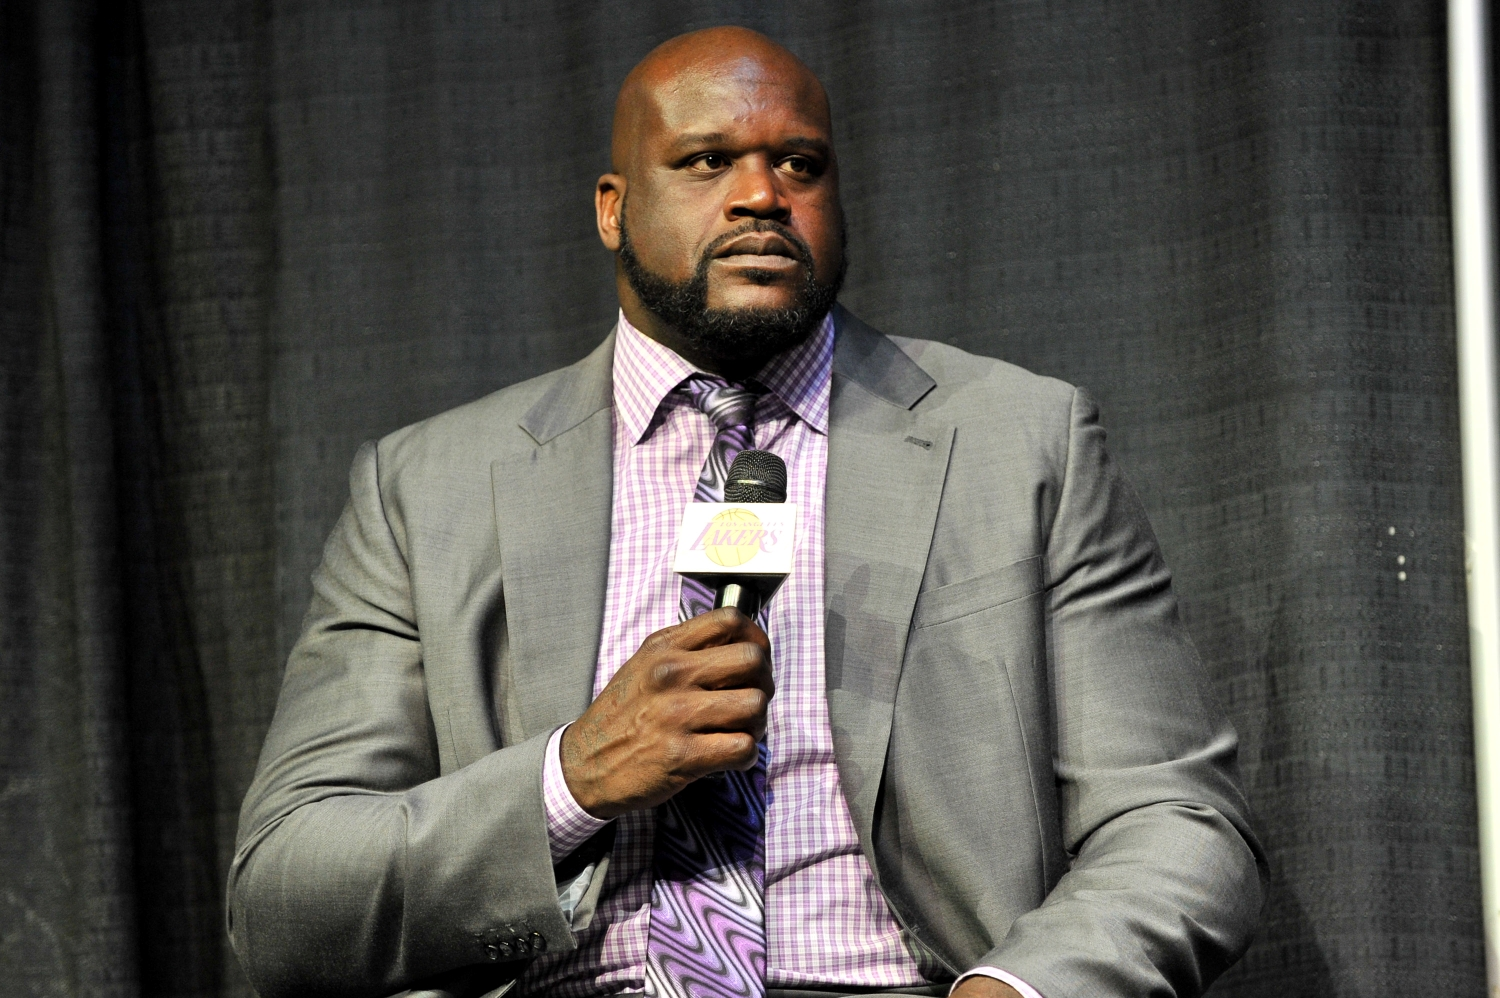 Former NBA star Shaquille O'Neal speaks during a Lakers event at the Staples Center.